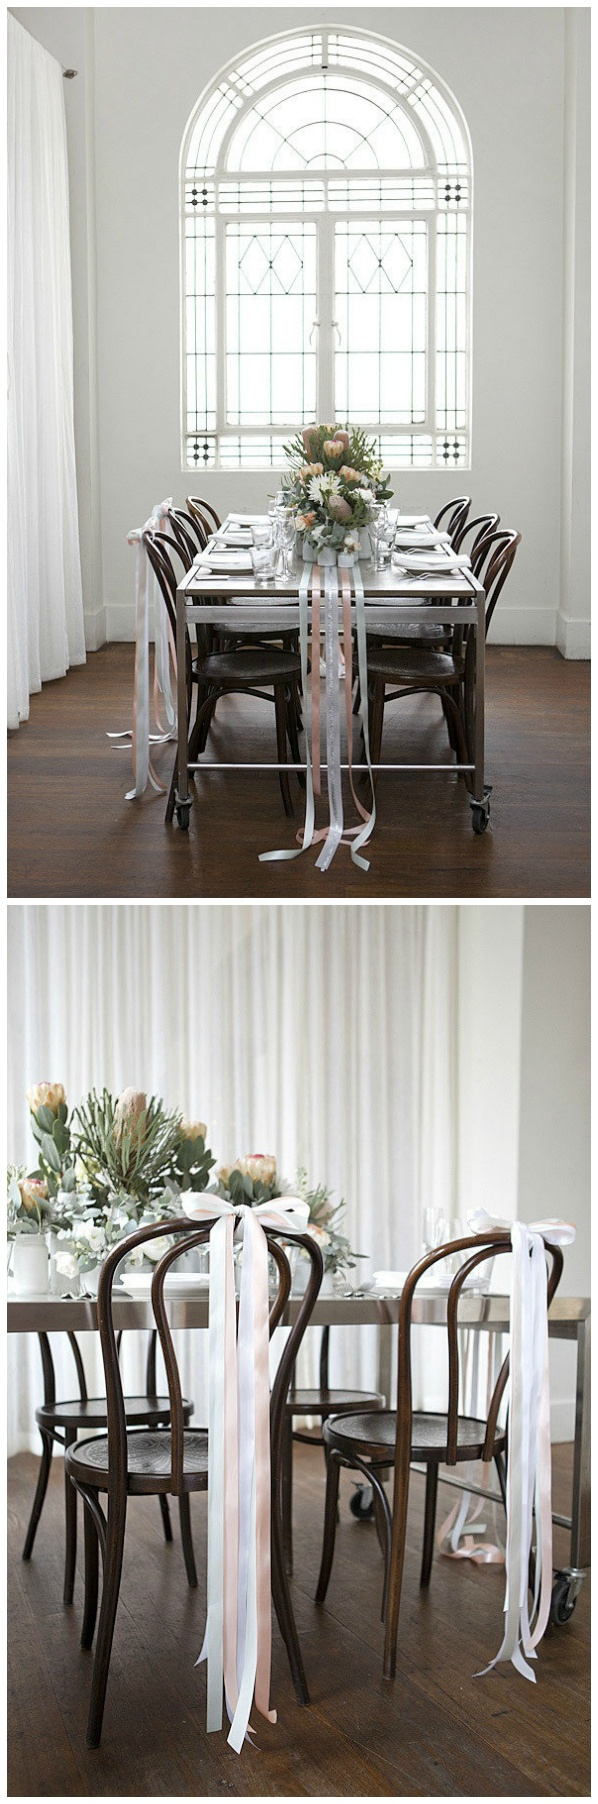 Tablescape Chair Decor Do It With White And Glittery Silver Ribbons